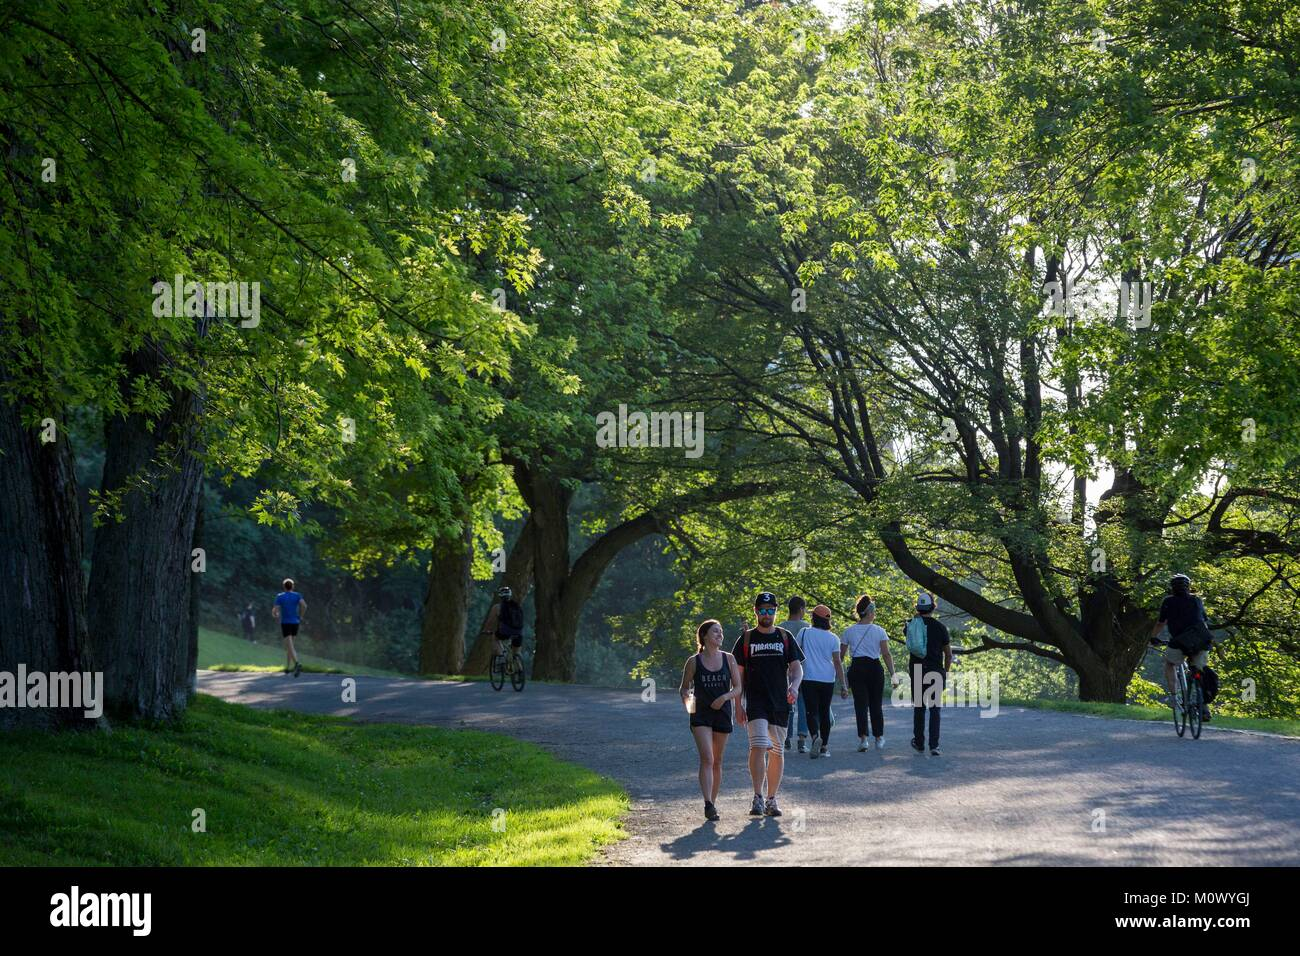 Canada,Quebec province,Montreal,Mount Royal Park,Summer Walkers - Stock Image